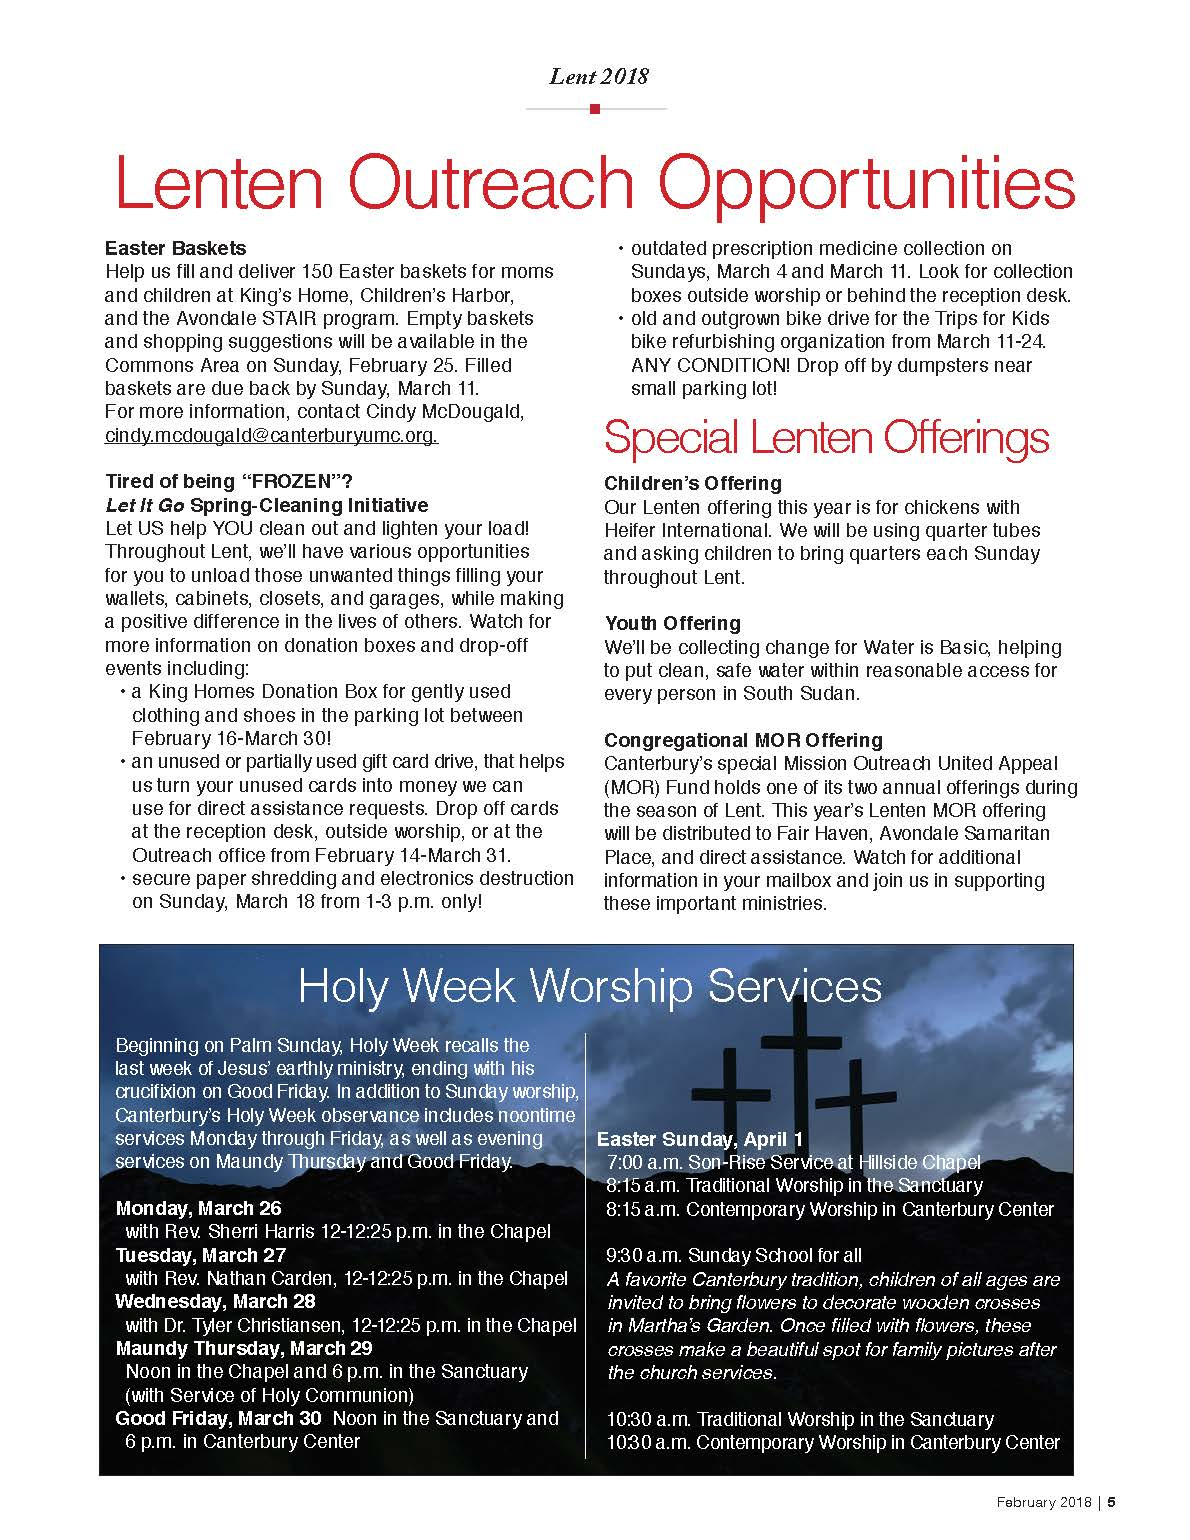 Lent 2018 canterbury united methodist church service opportunities izmirmasajfo Gallery